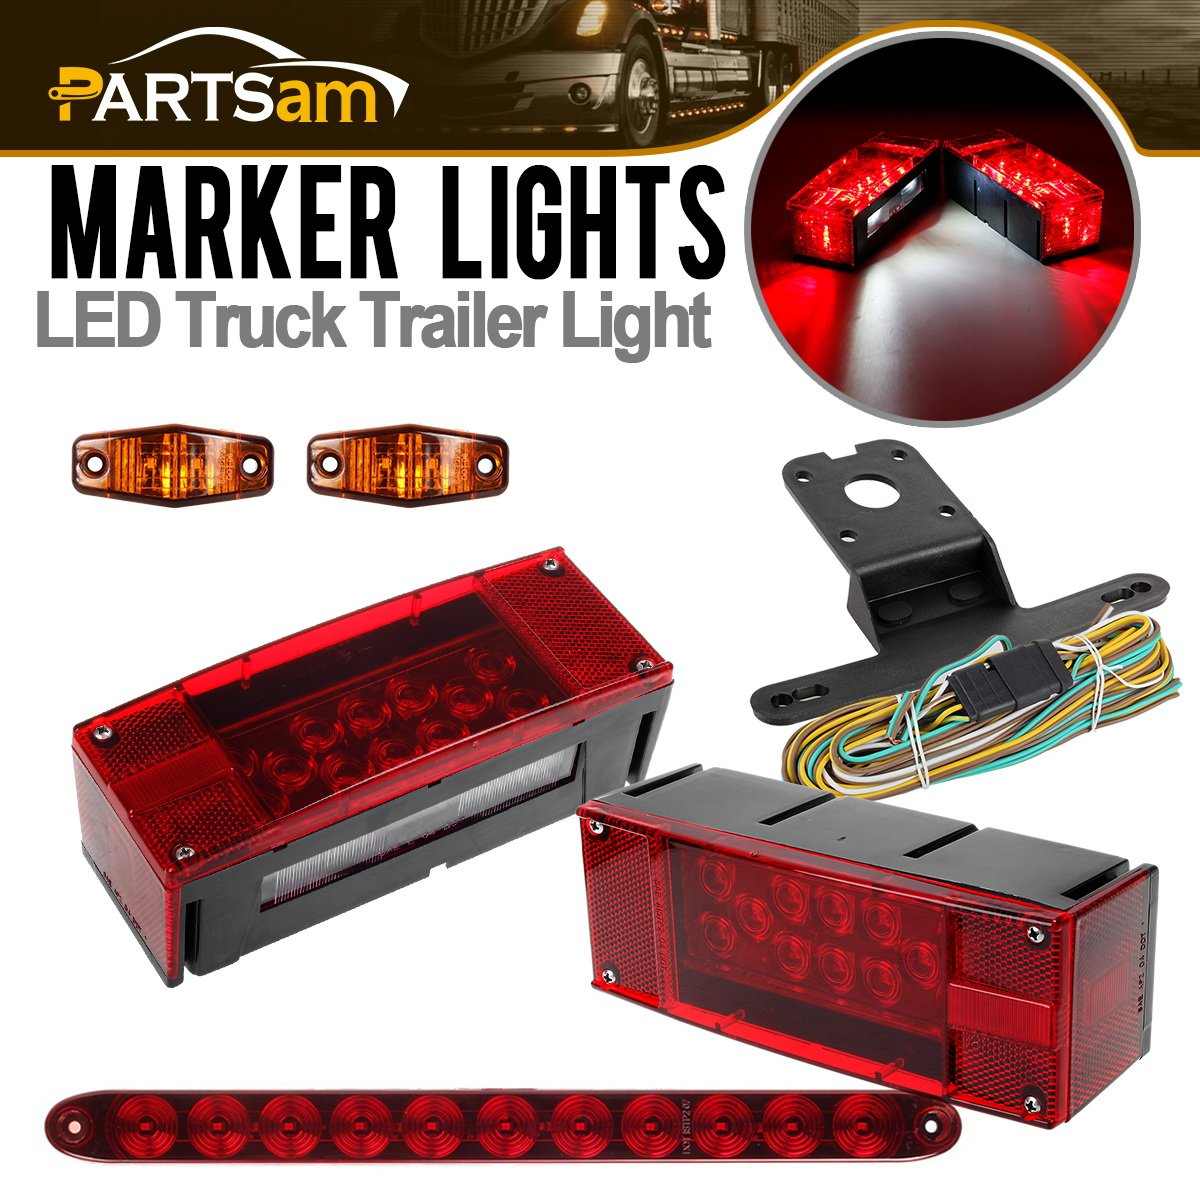 Partsam 12v Submersible Led Rv Truck Trailer Light Kit2xred Dormanr 923009 Right Tail Circuit Board Rectangle Stop Turn